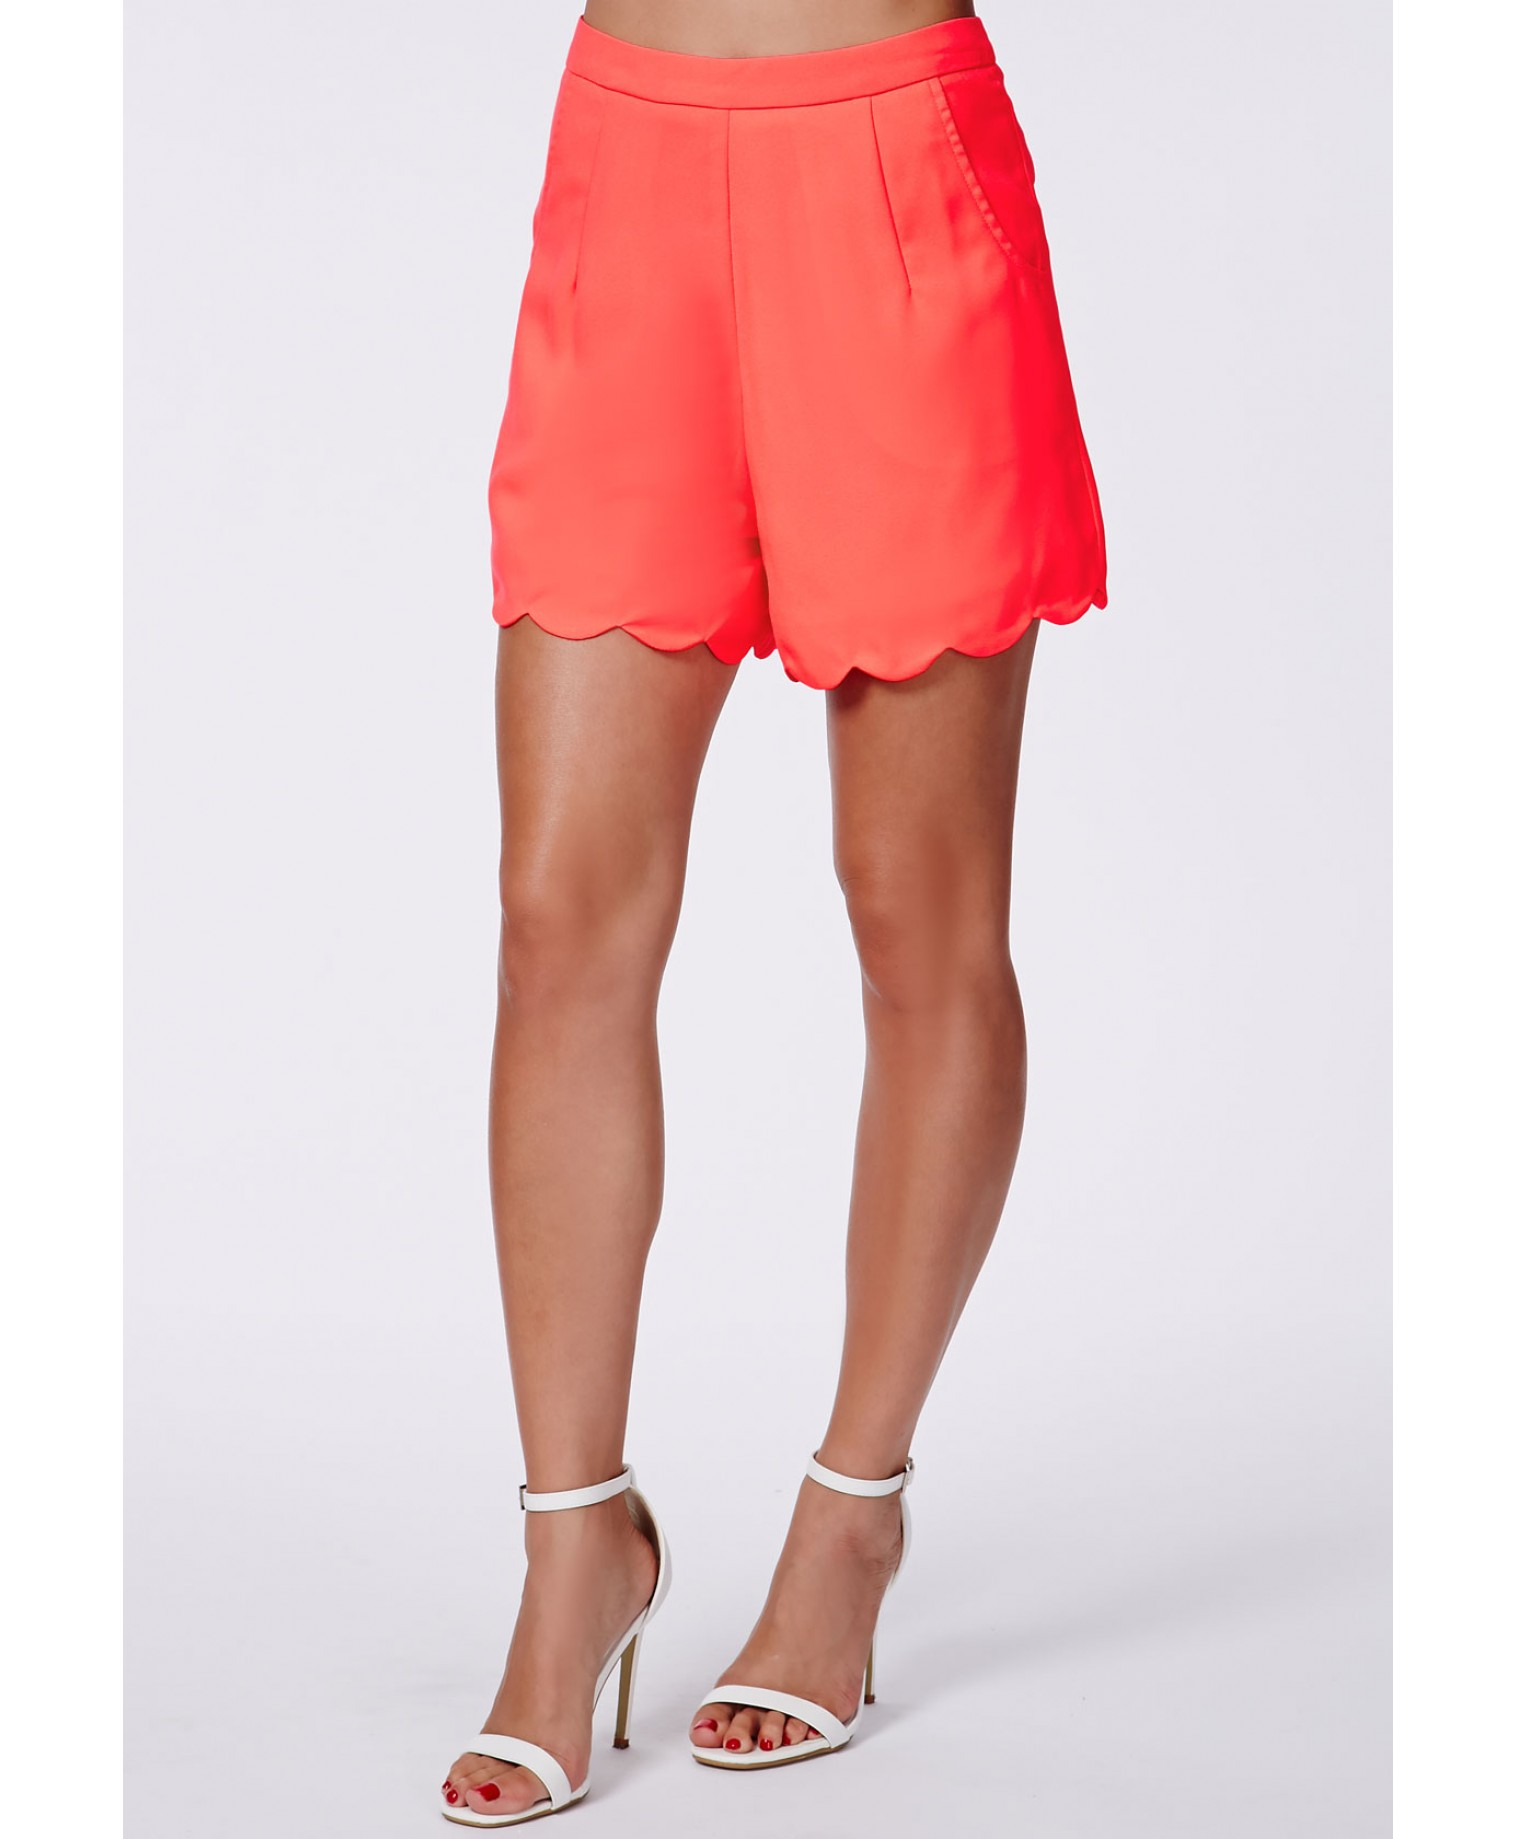 Missguided Luisina Coral High Waisted Scalloped Shorts in Red | Lyst